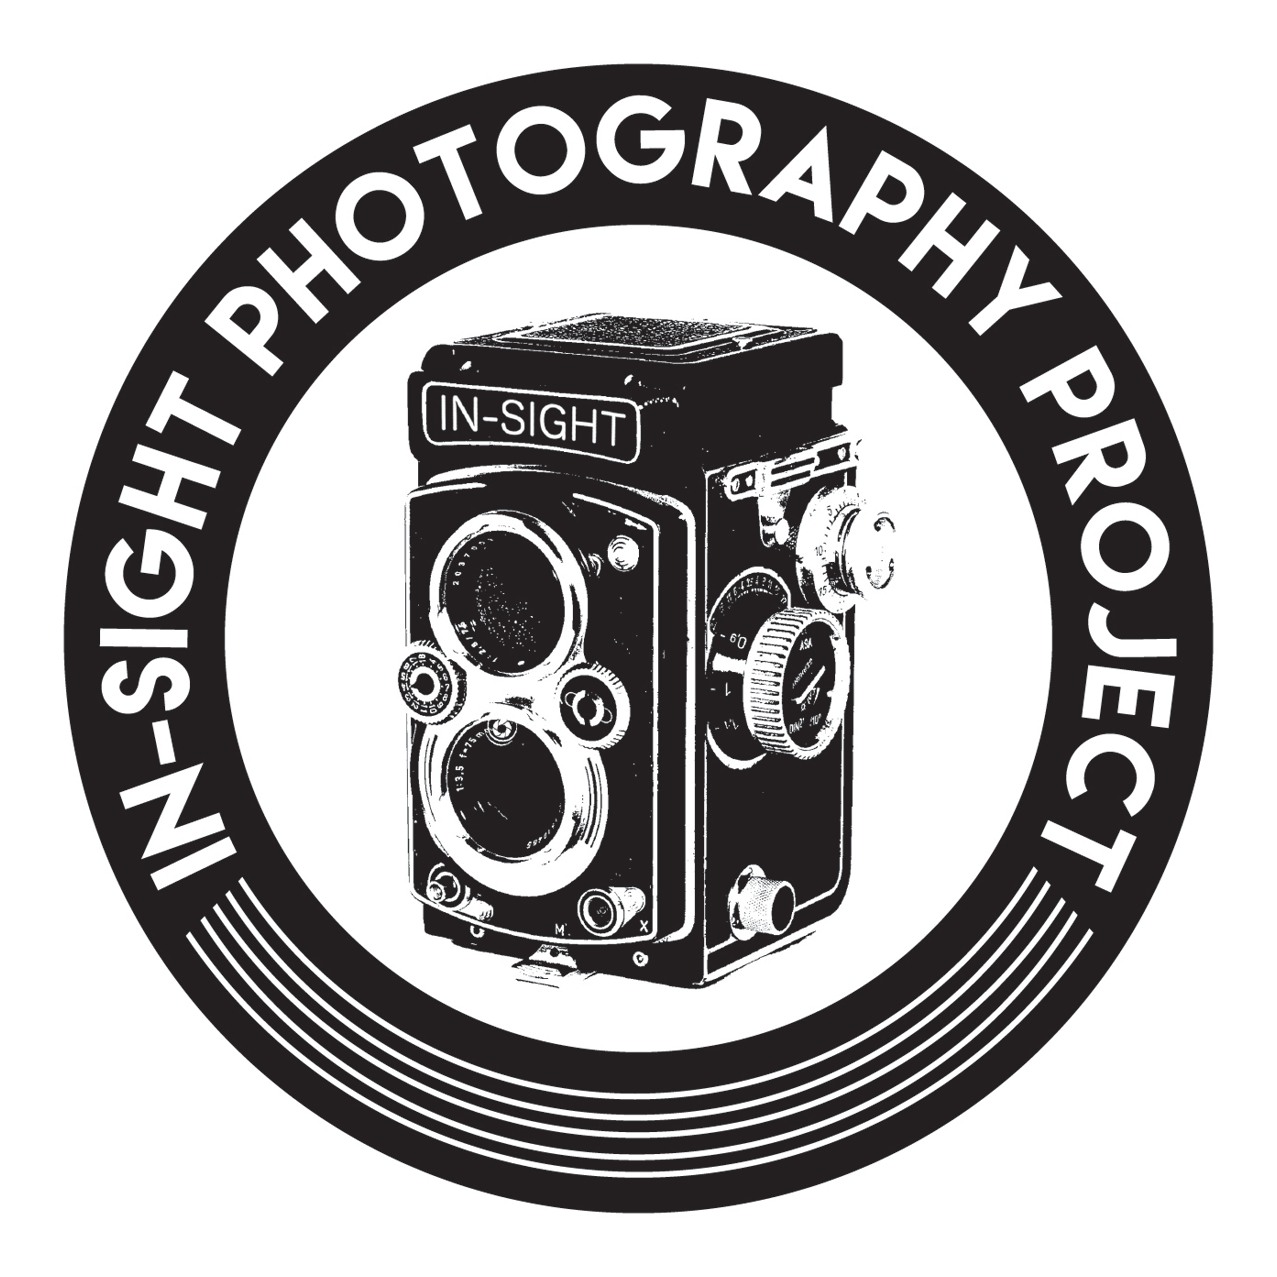 In-Sight Photography Project